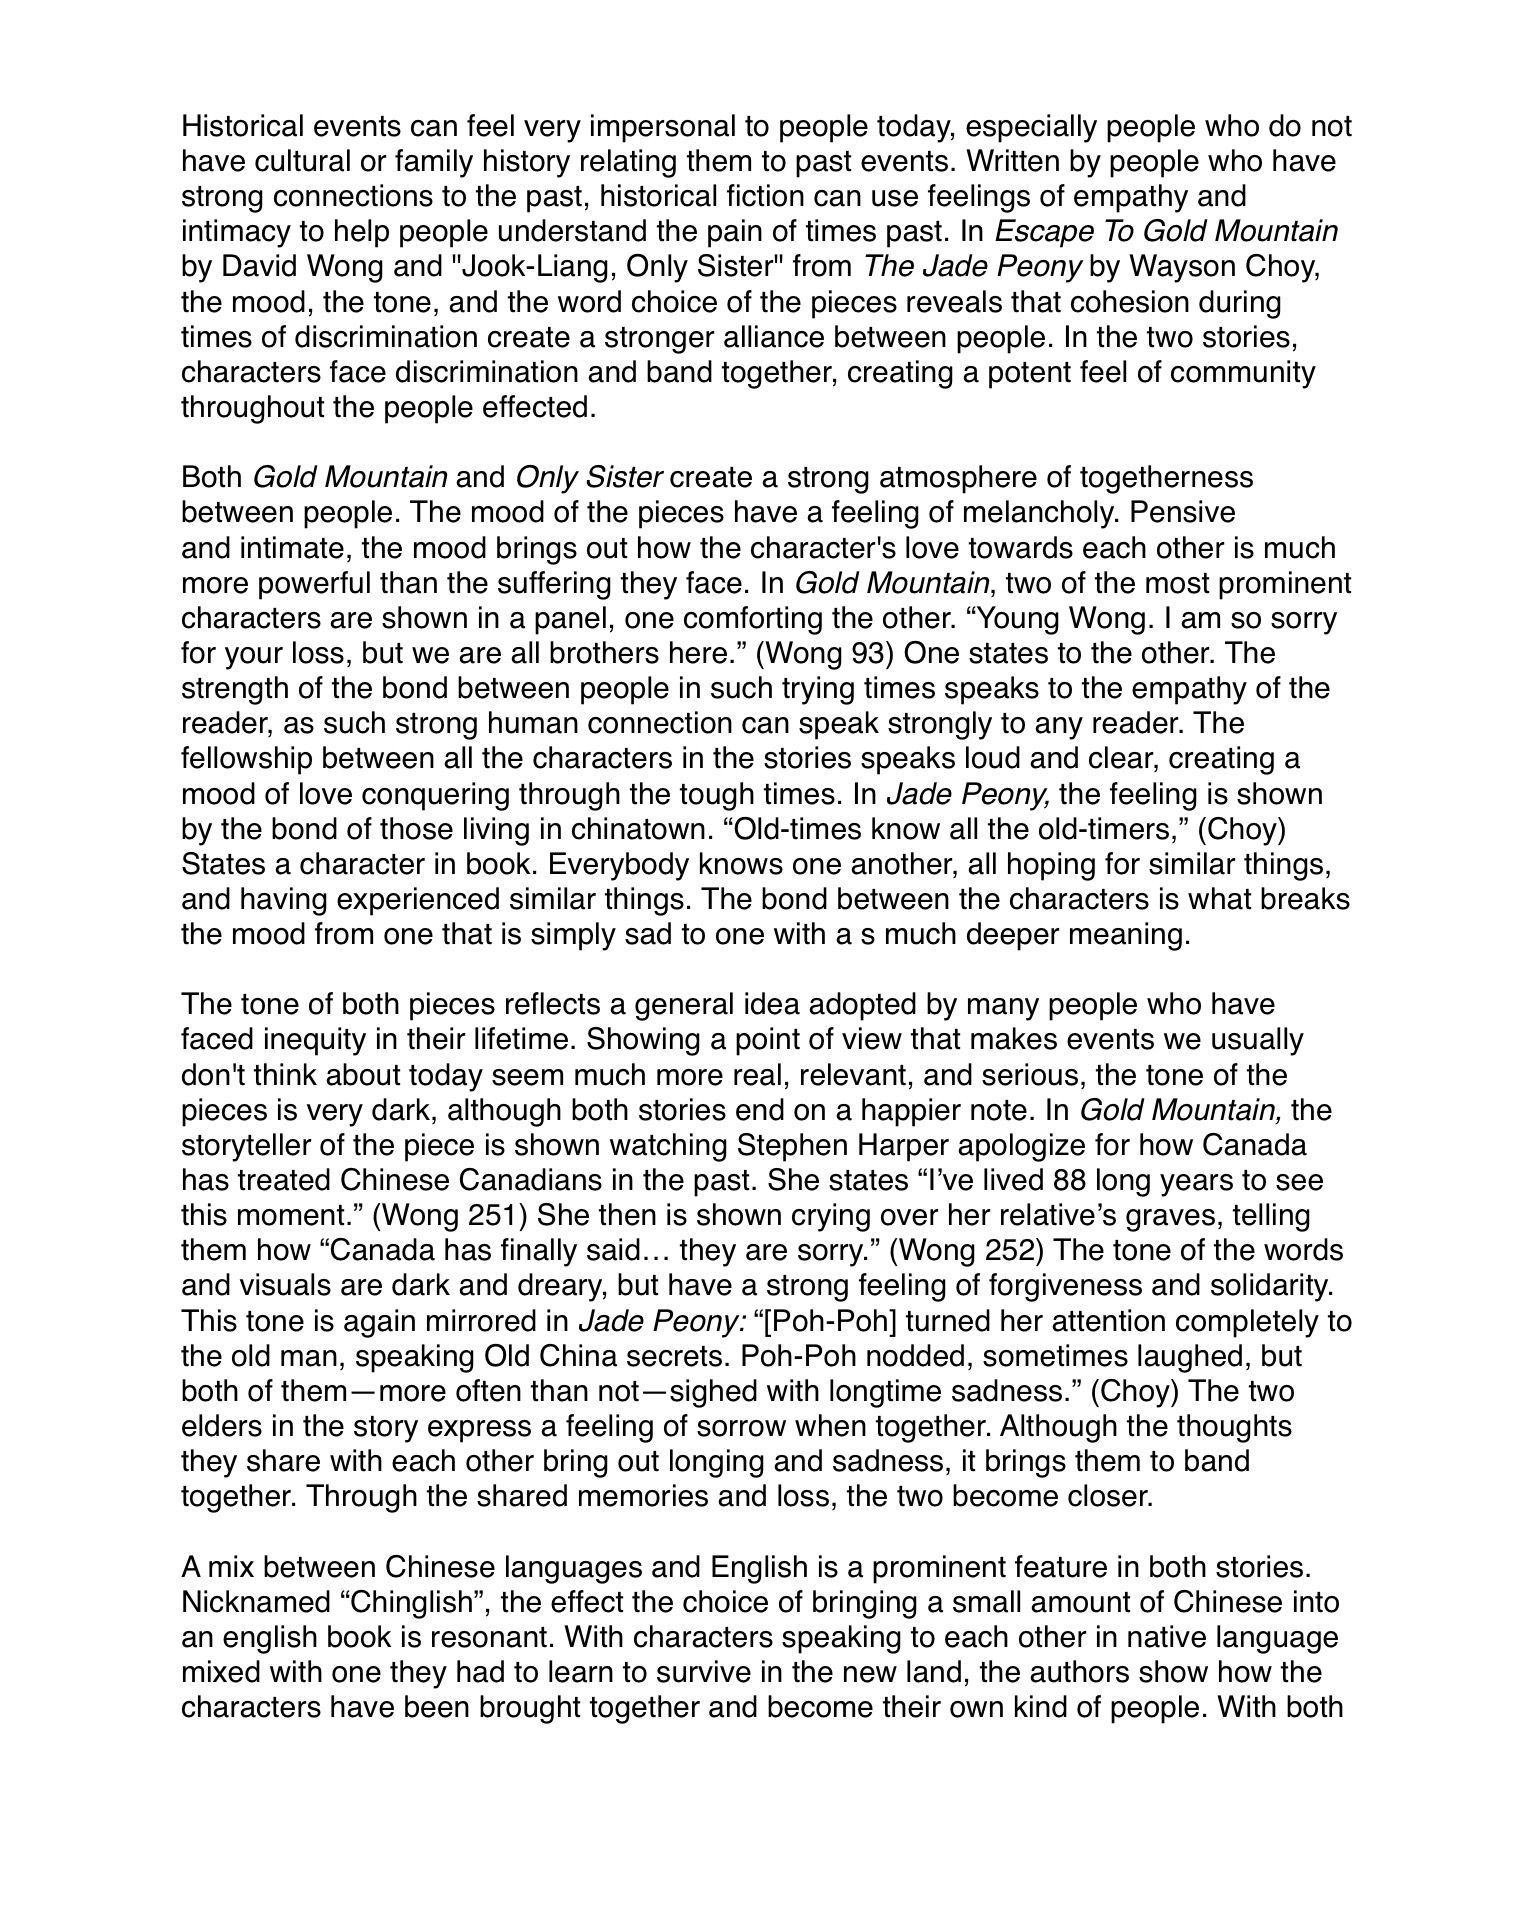 writing kirby s attempt at a blog finally we wrote the essay which took longer than it should have two classes and some time that evening but i finished it and here it is for your